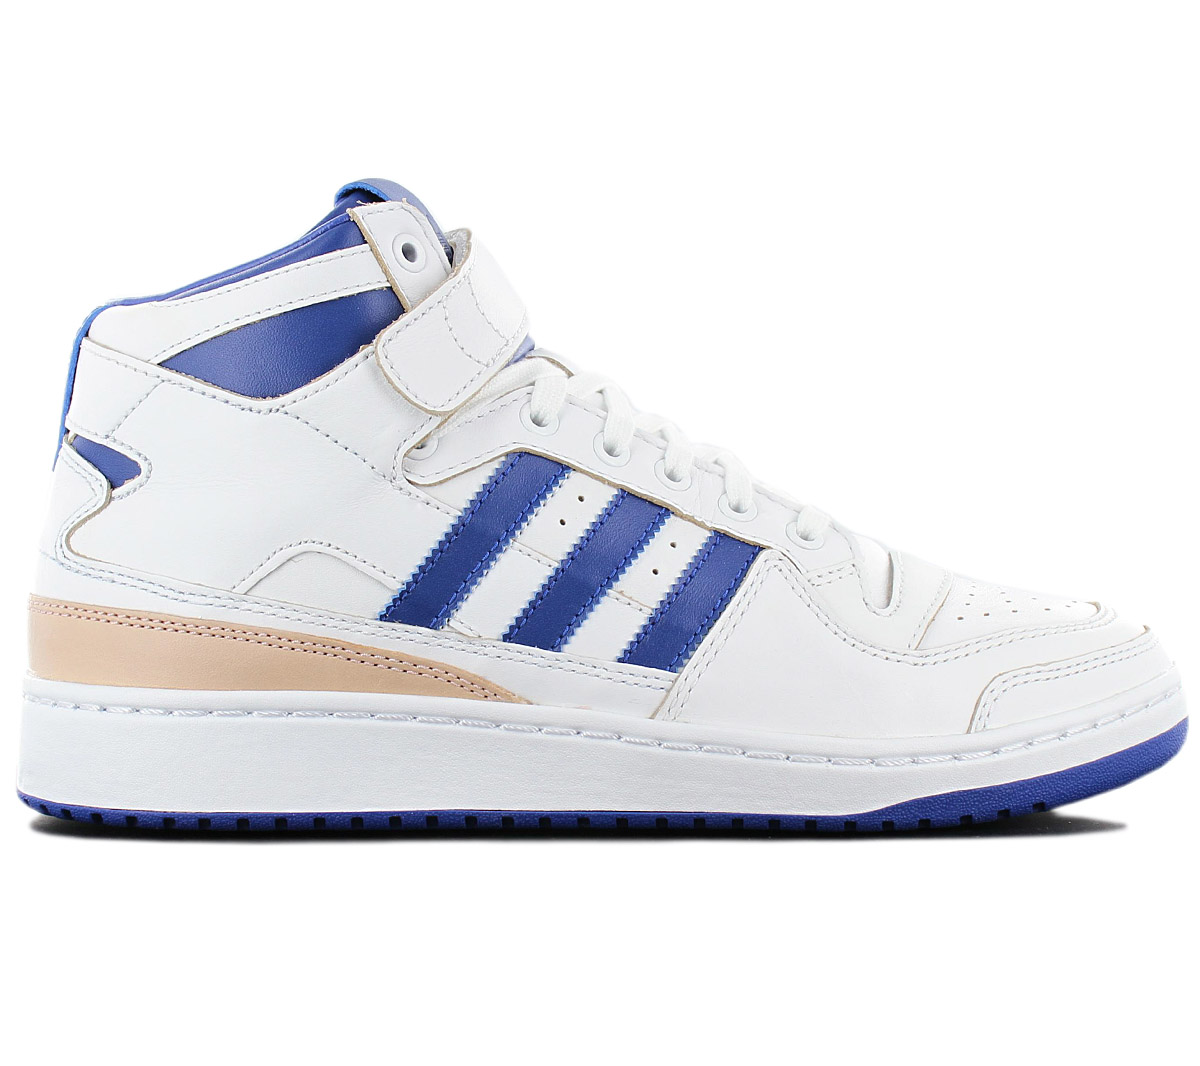 Details about Adidas Originals Forum mid (Wrap) Bounce Men's Sneaker Shoes  BY4412 Sneakers